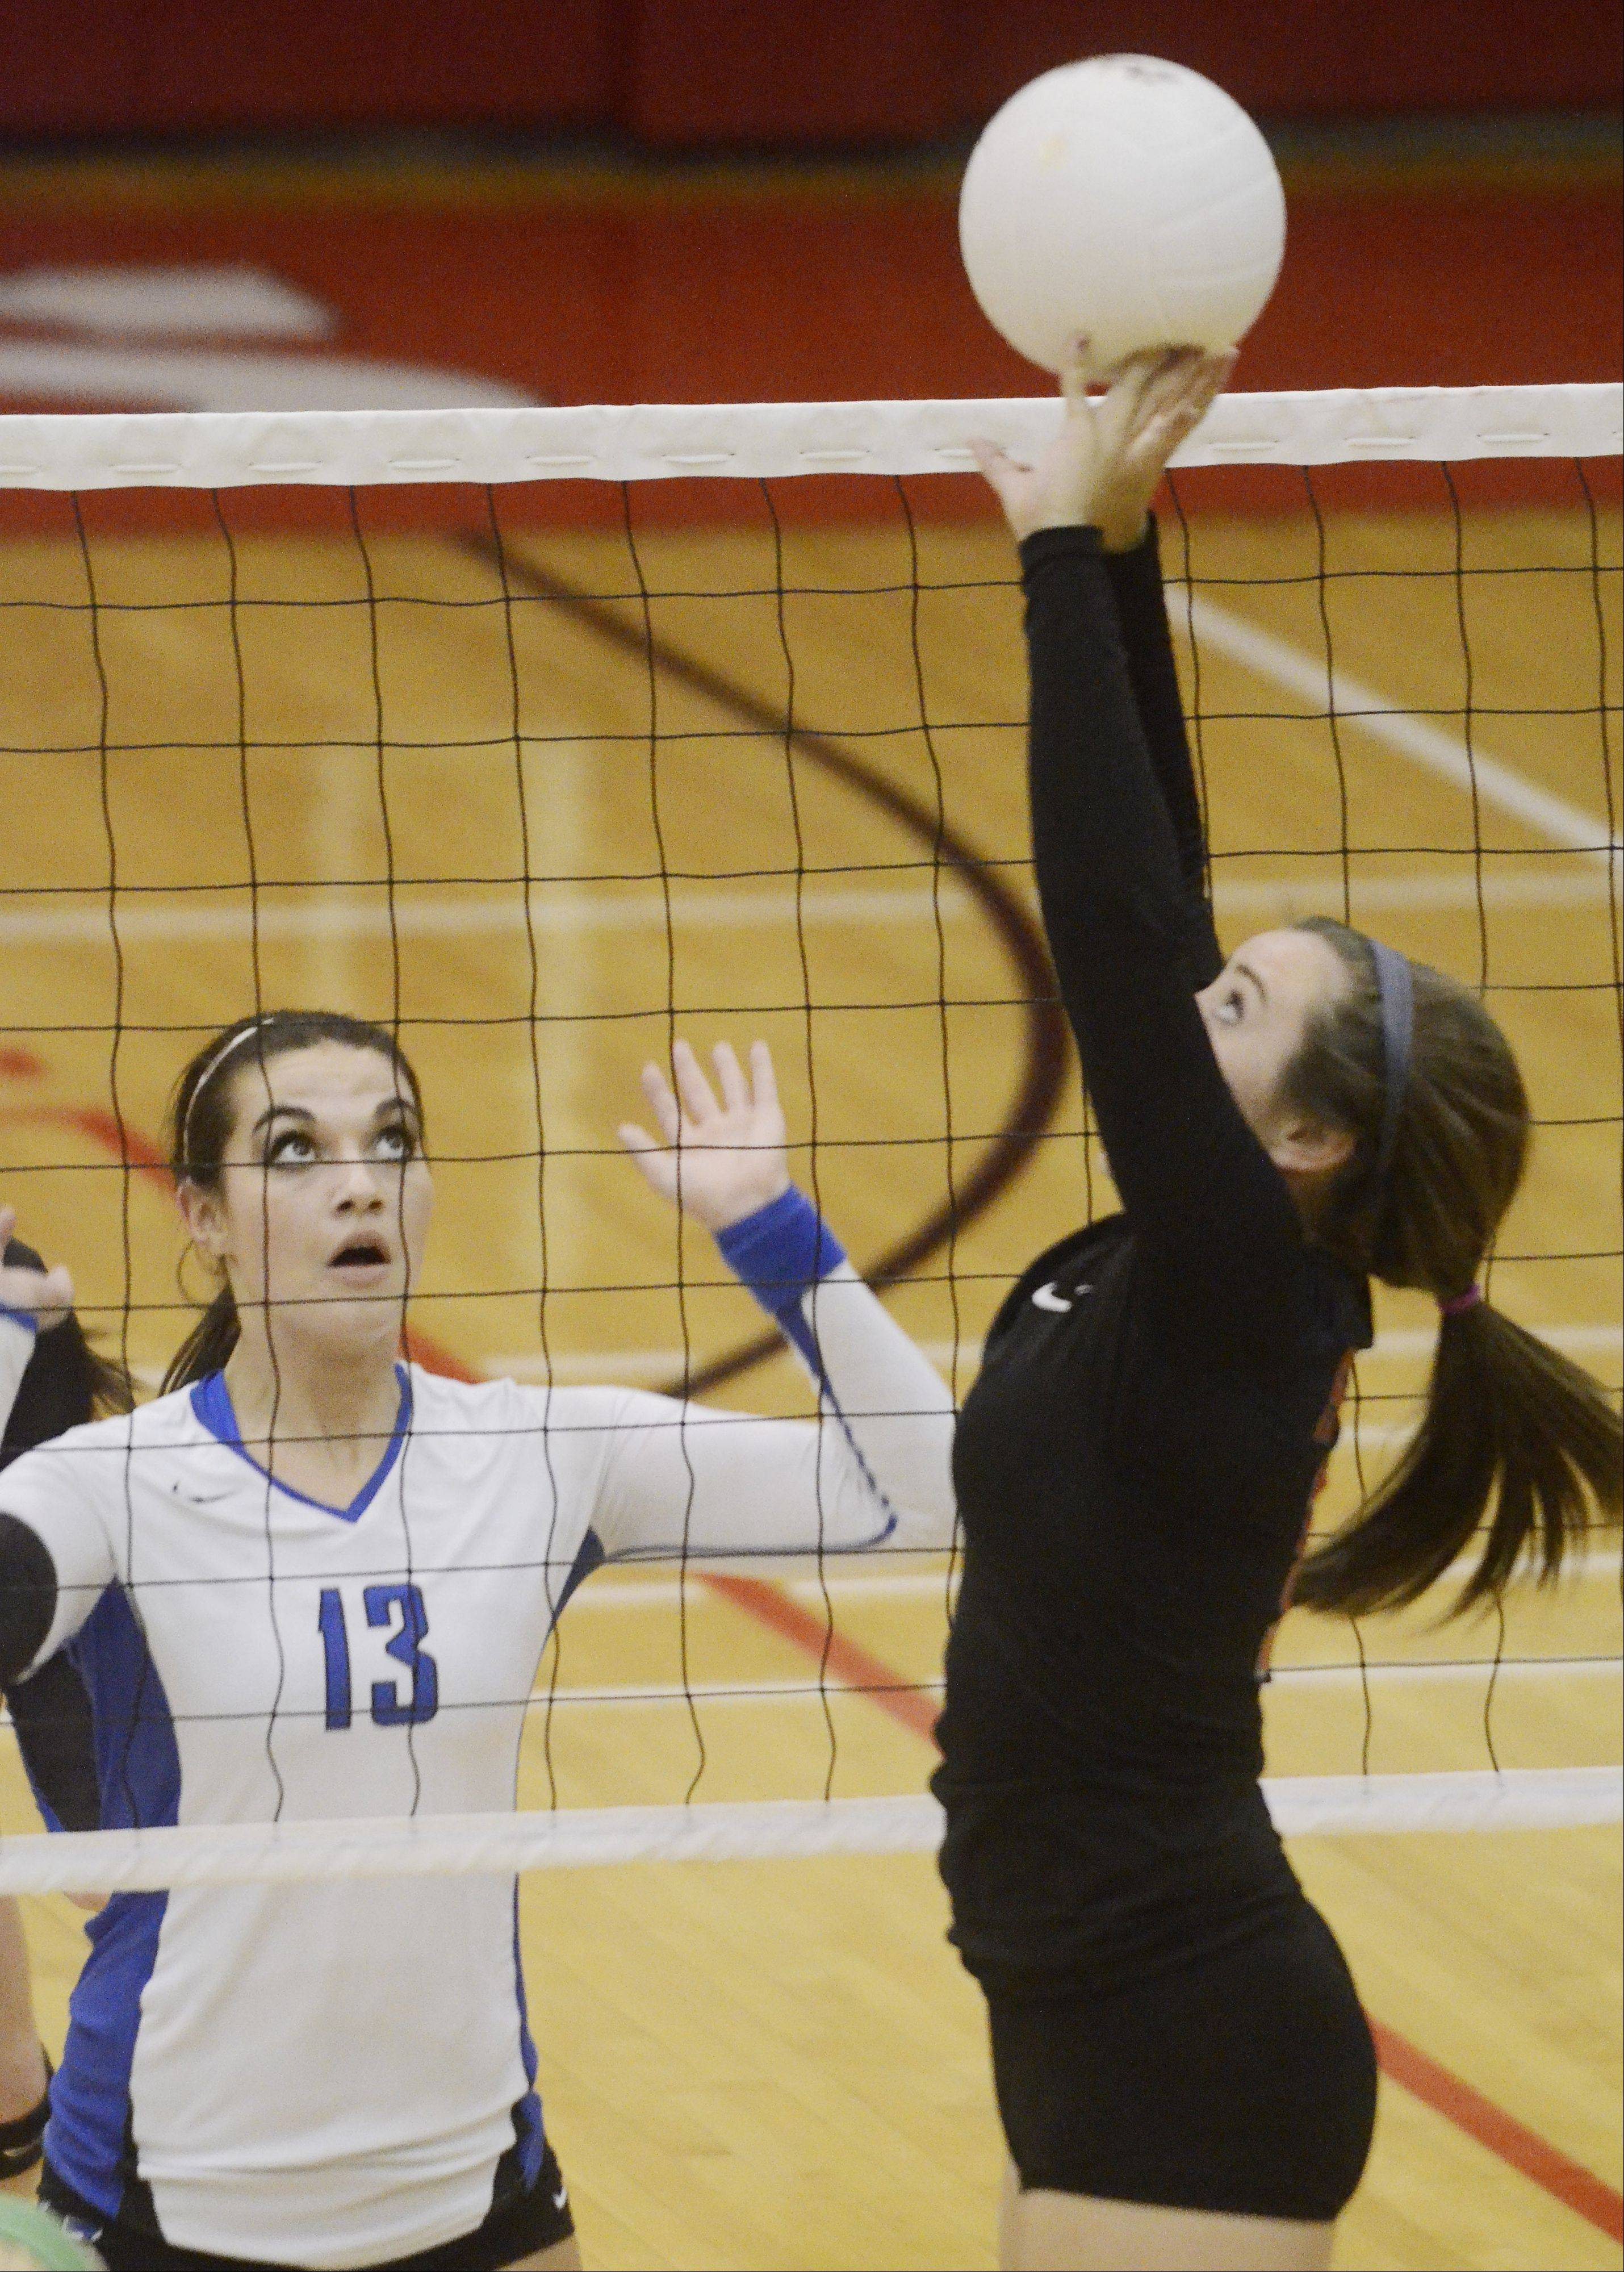 Palatine's Sarah Schiffner, right, sets the ball as Lake Zurich's Mallory Parsons anticipates a block during Wednesday's game.